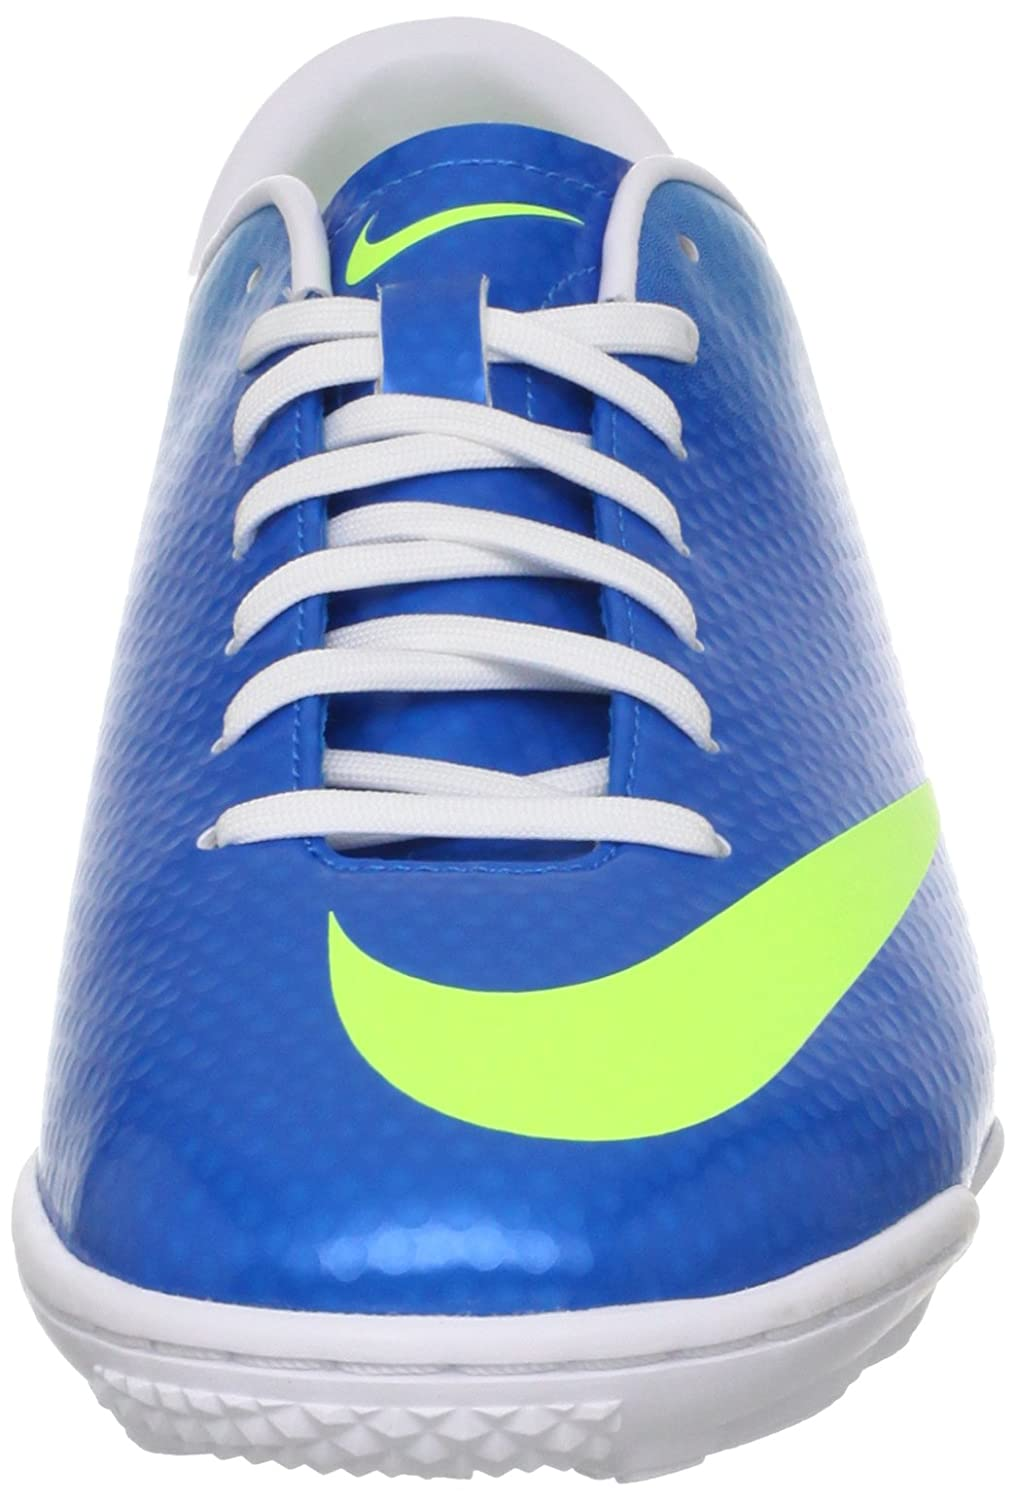 4419cbfc59972 reduced nike mercurial victory iv fg soccer cleats neptune blue with ...